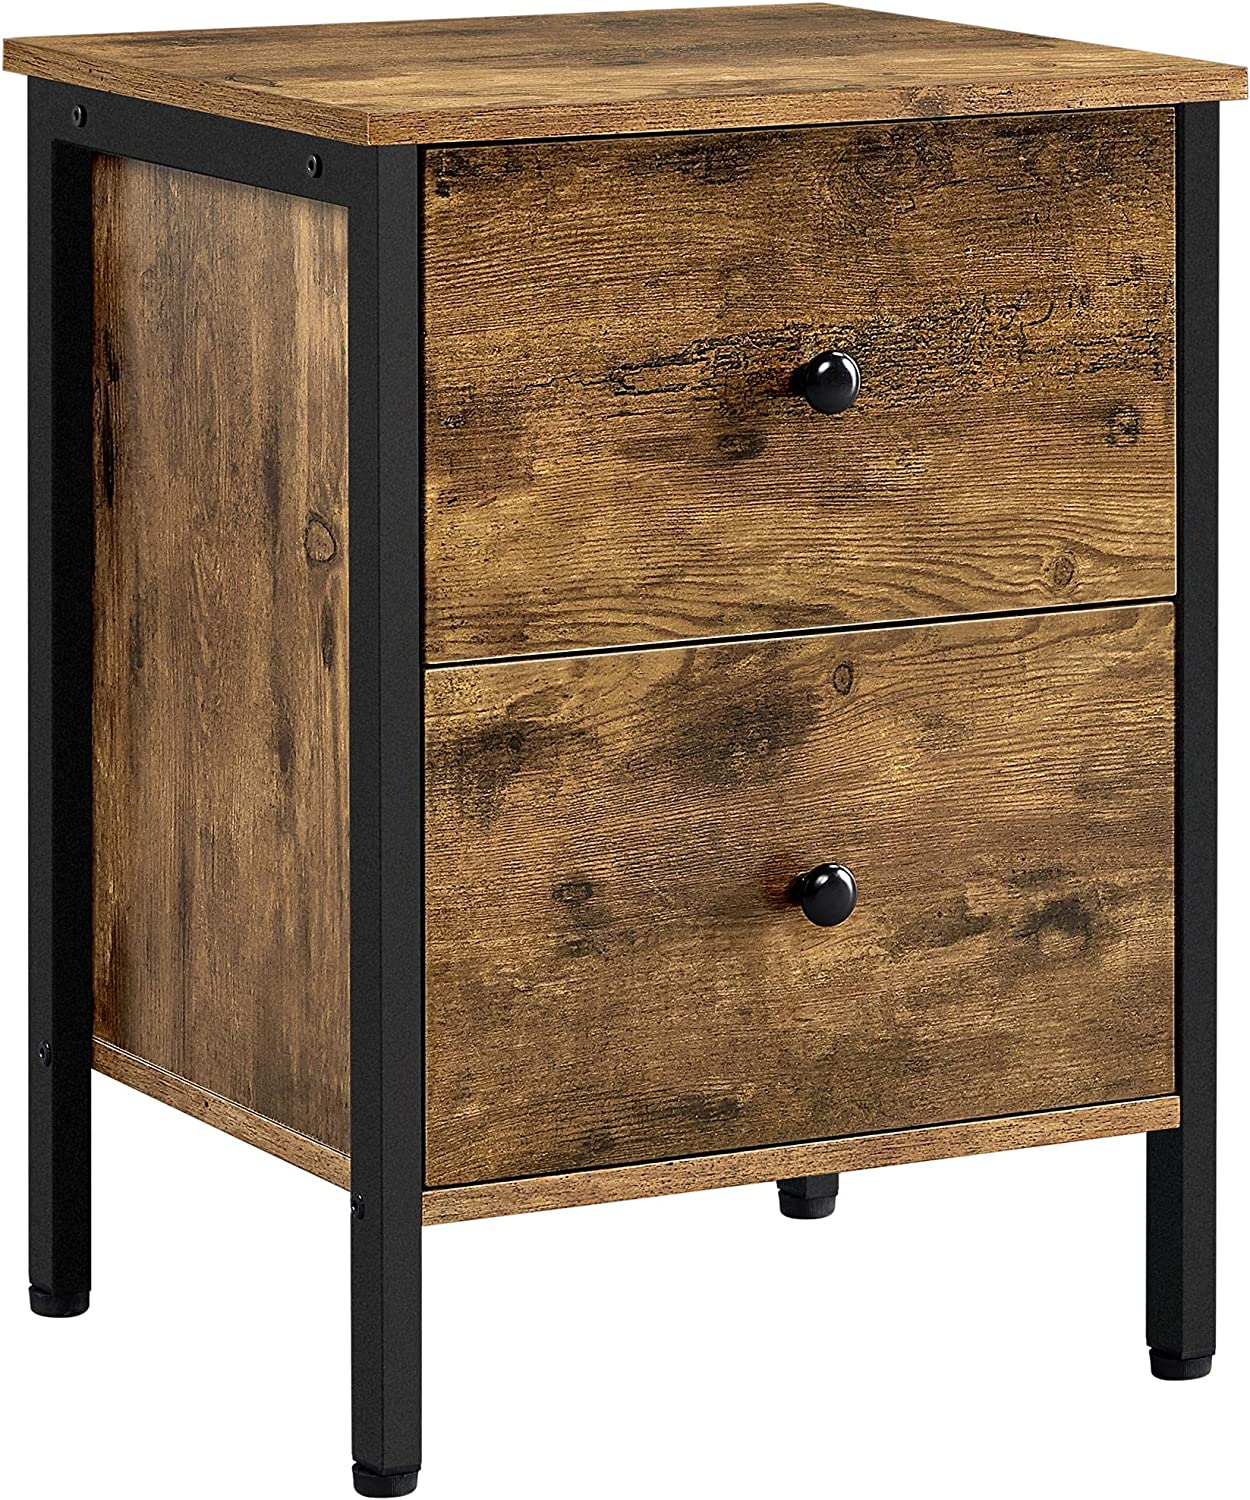 Topeakmart End Table with Ranking TOP20 2 Storage Industrial Sofa Mail order cheap Drawers Sid